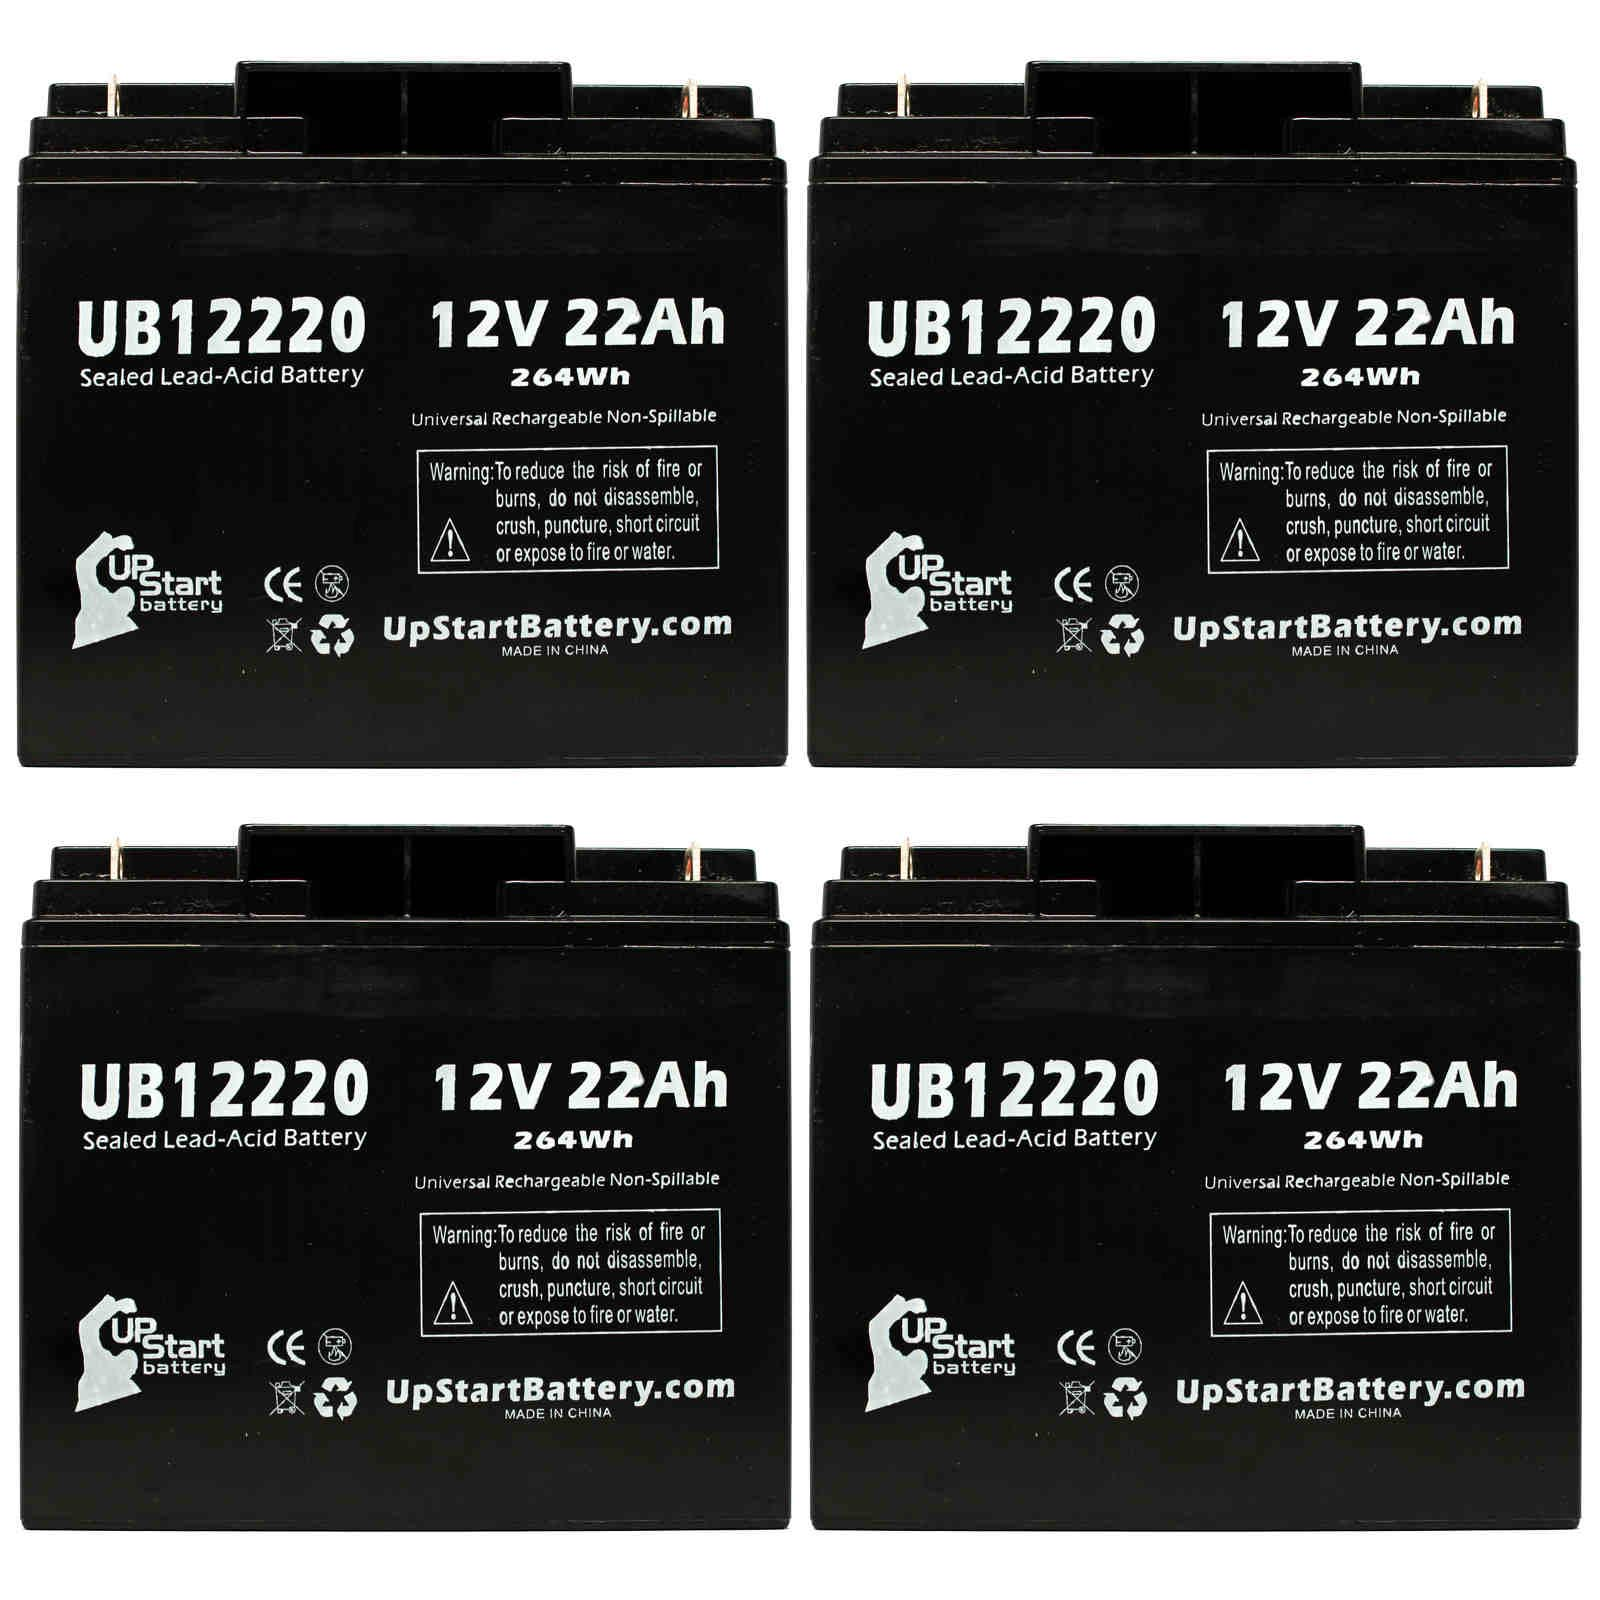 UpStart Battery 4x Pack - SEARS CRAFTSMAN DIEHARD PORTABLE POWER 1150 Battery - Replacement UB12220 SLA Battery (12V, 22Ah, T4 Terminal) at Sears.com